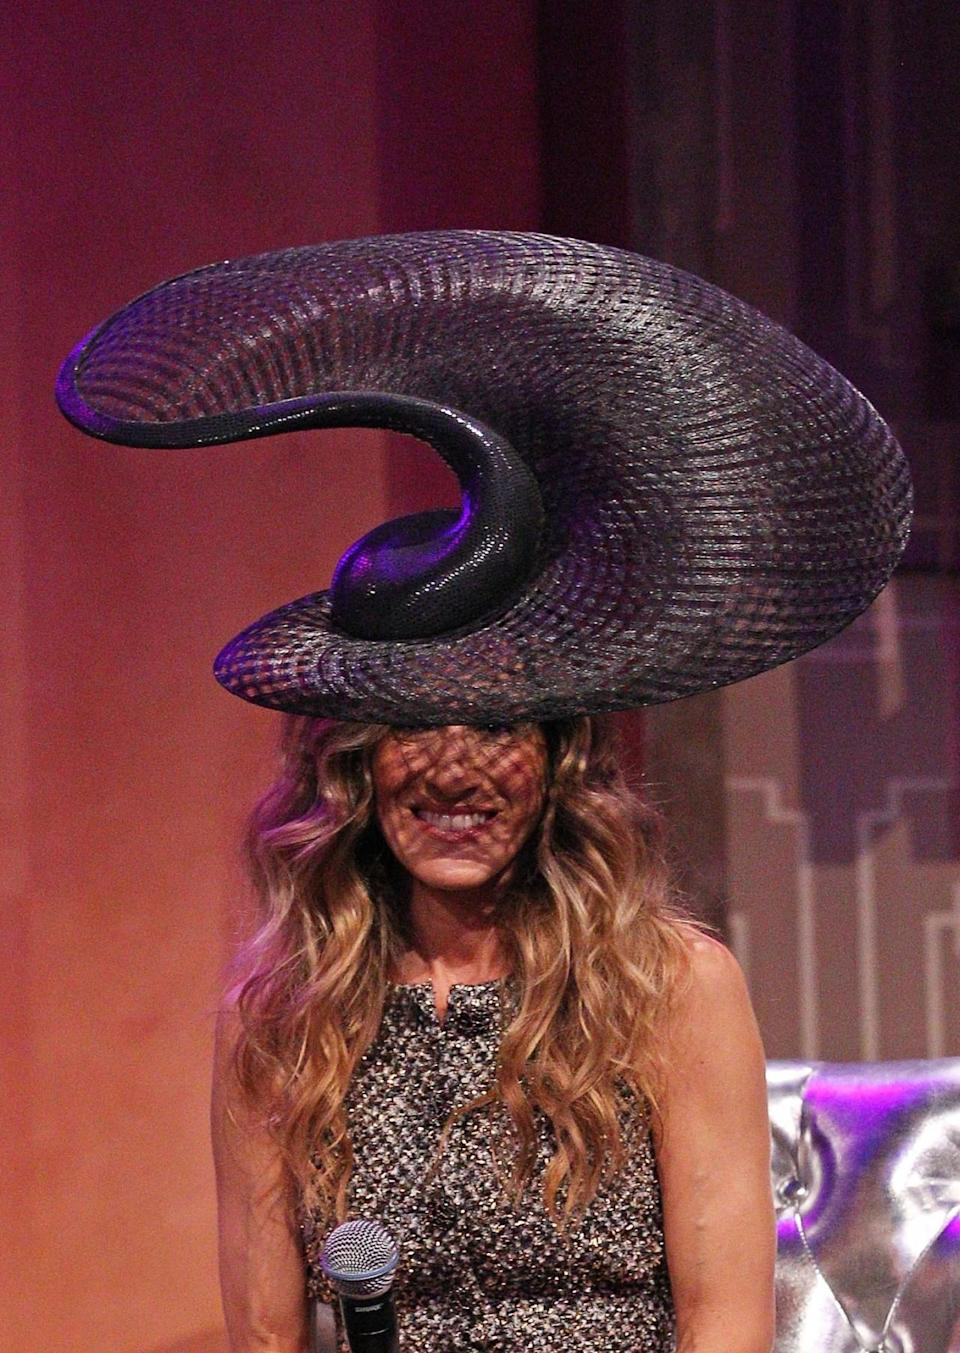 <p>SJP wore this Slinky slug from outerspace by Philip Treacy at the VRC Oaks Club Ladies Luncheon in November 2011 in Melbourne, Australia. </p>